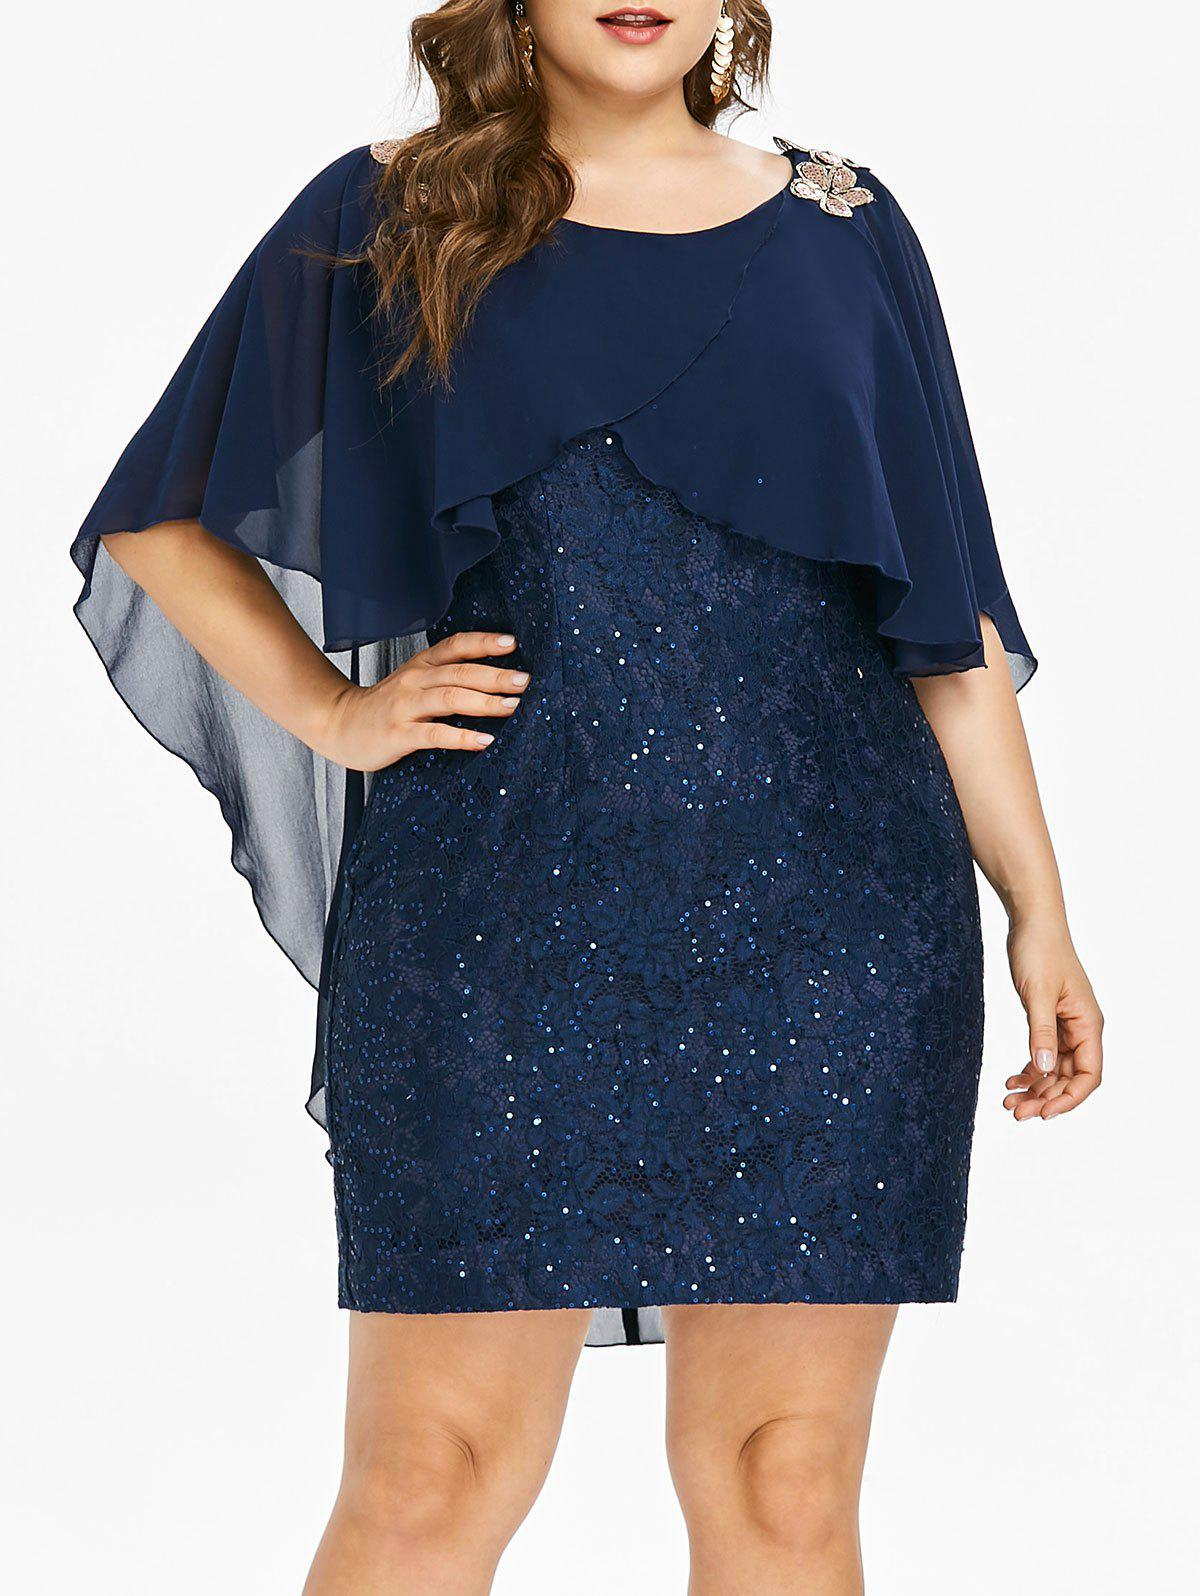 Overlay Plus Size - Robe ornée de sequins - Cadetblue 5X